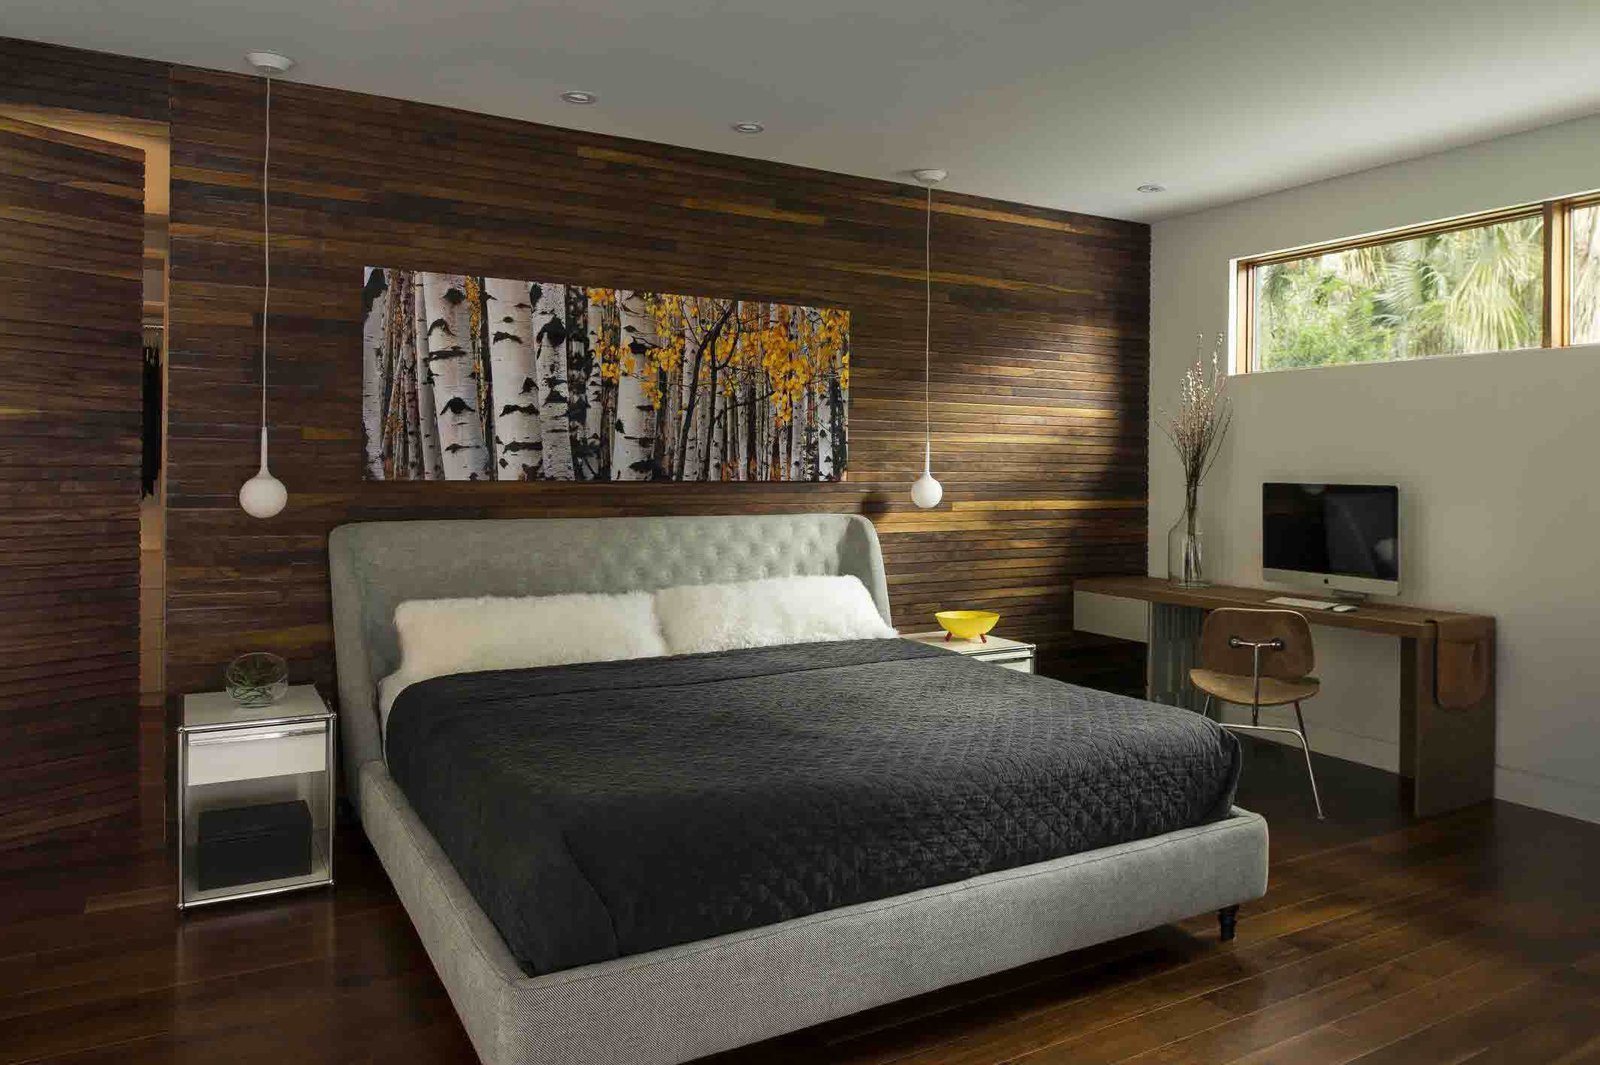 """Bedroom and Bed Wood was used more extensively in the master bedroom. """"I think the intention was just to warm it up and make it more cozy,"""" Kean says. A wood-covered """"disappearing door"""" cleverly conceals a closet.  Photo 6 of 7 in A Modern Home For a Design-Savvy Family in Florida"""